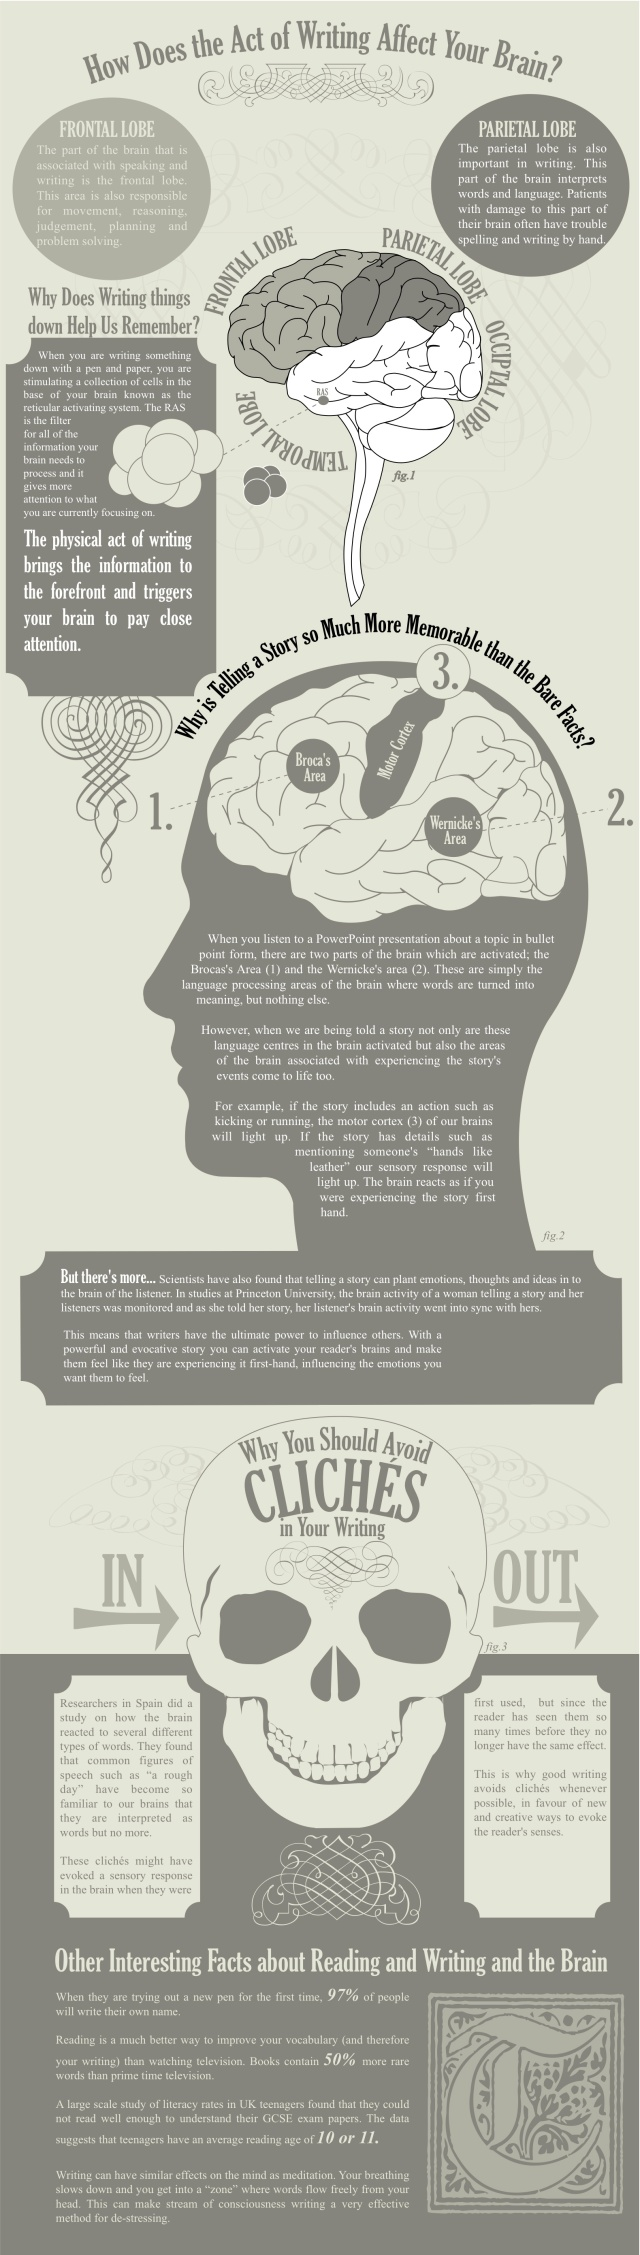 amazing-facts-about-writing-and-the-brain